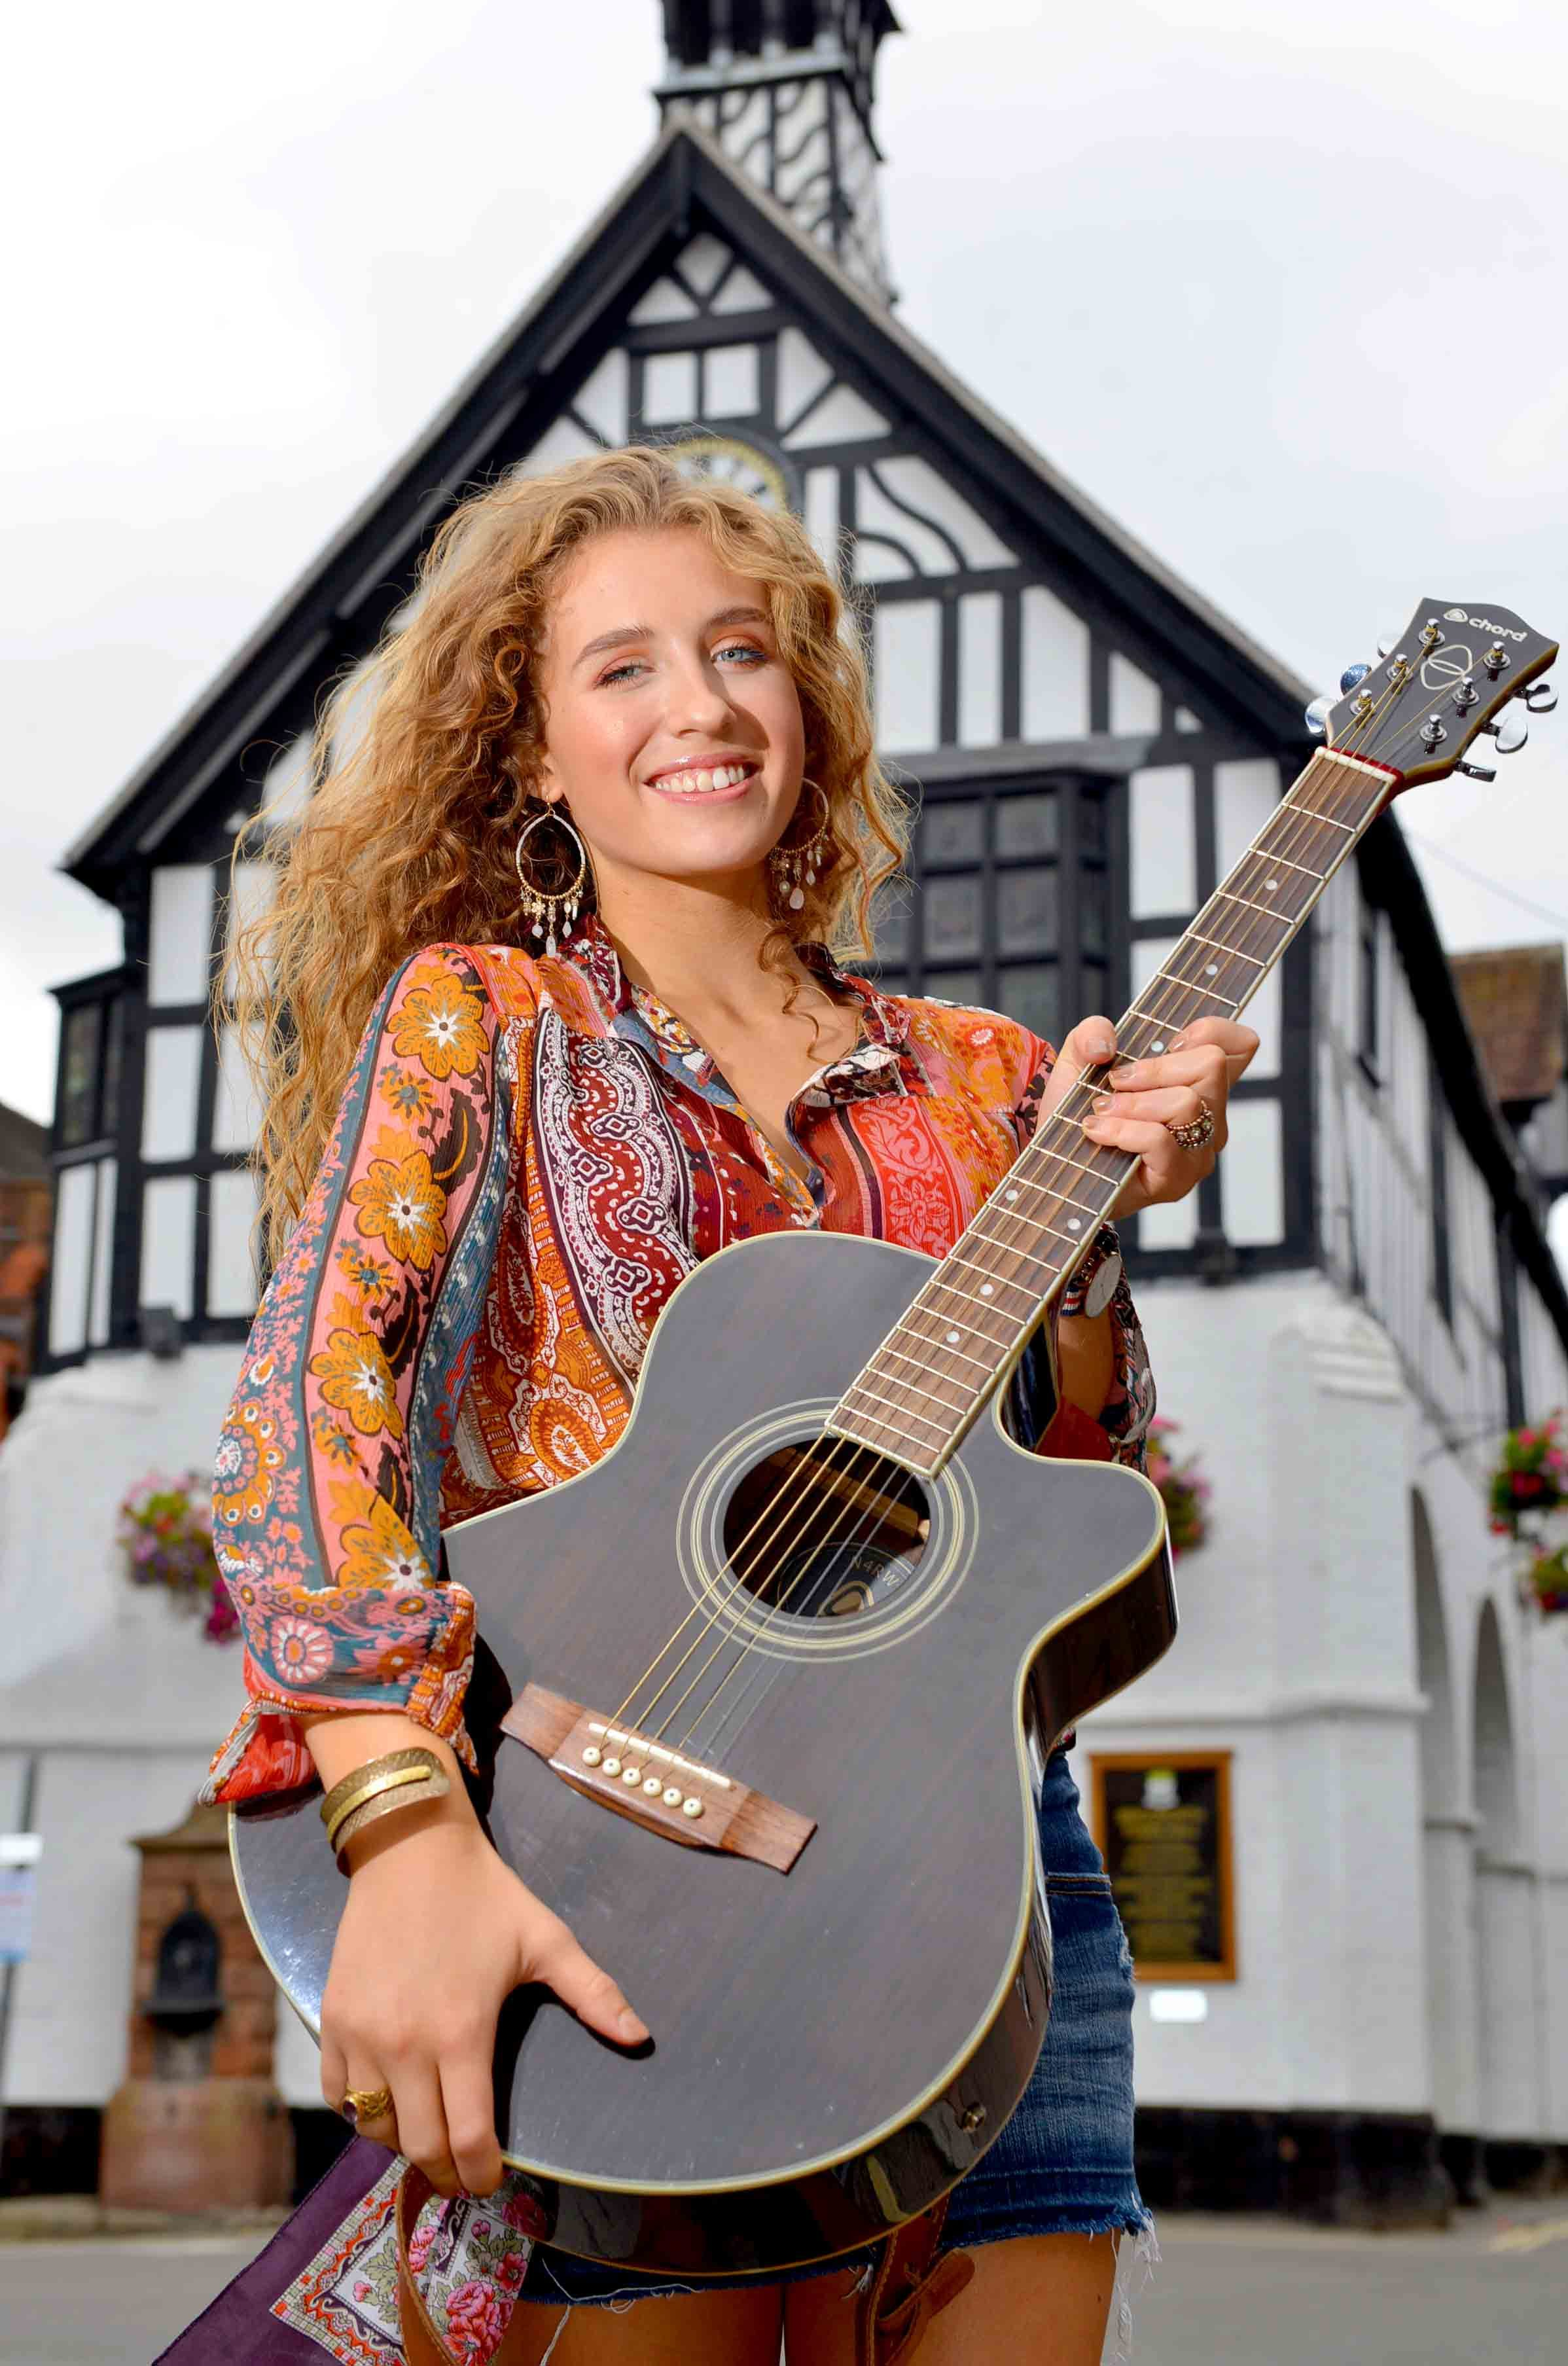 Bridgnorth Teenager Ready To Perform At Music Festival Express Star